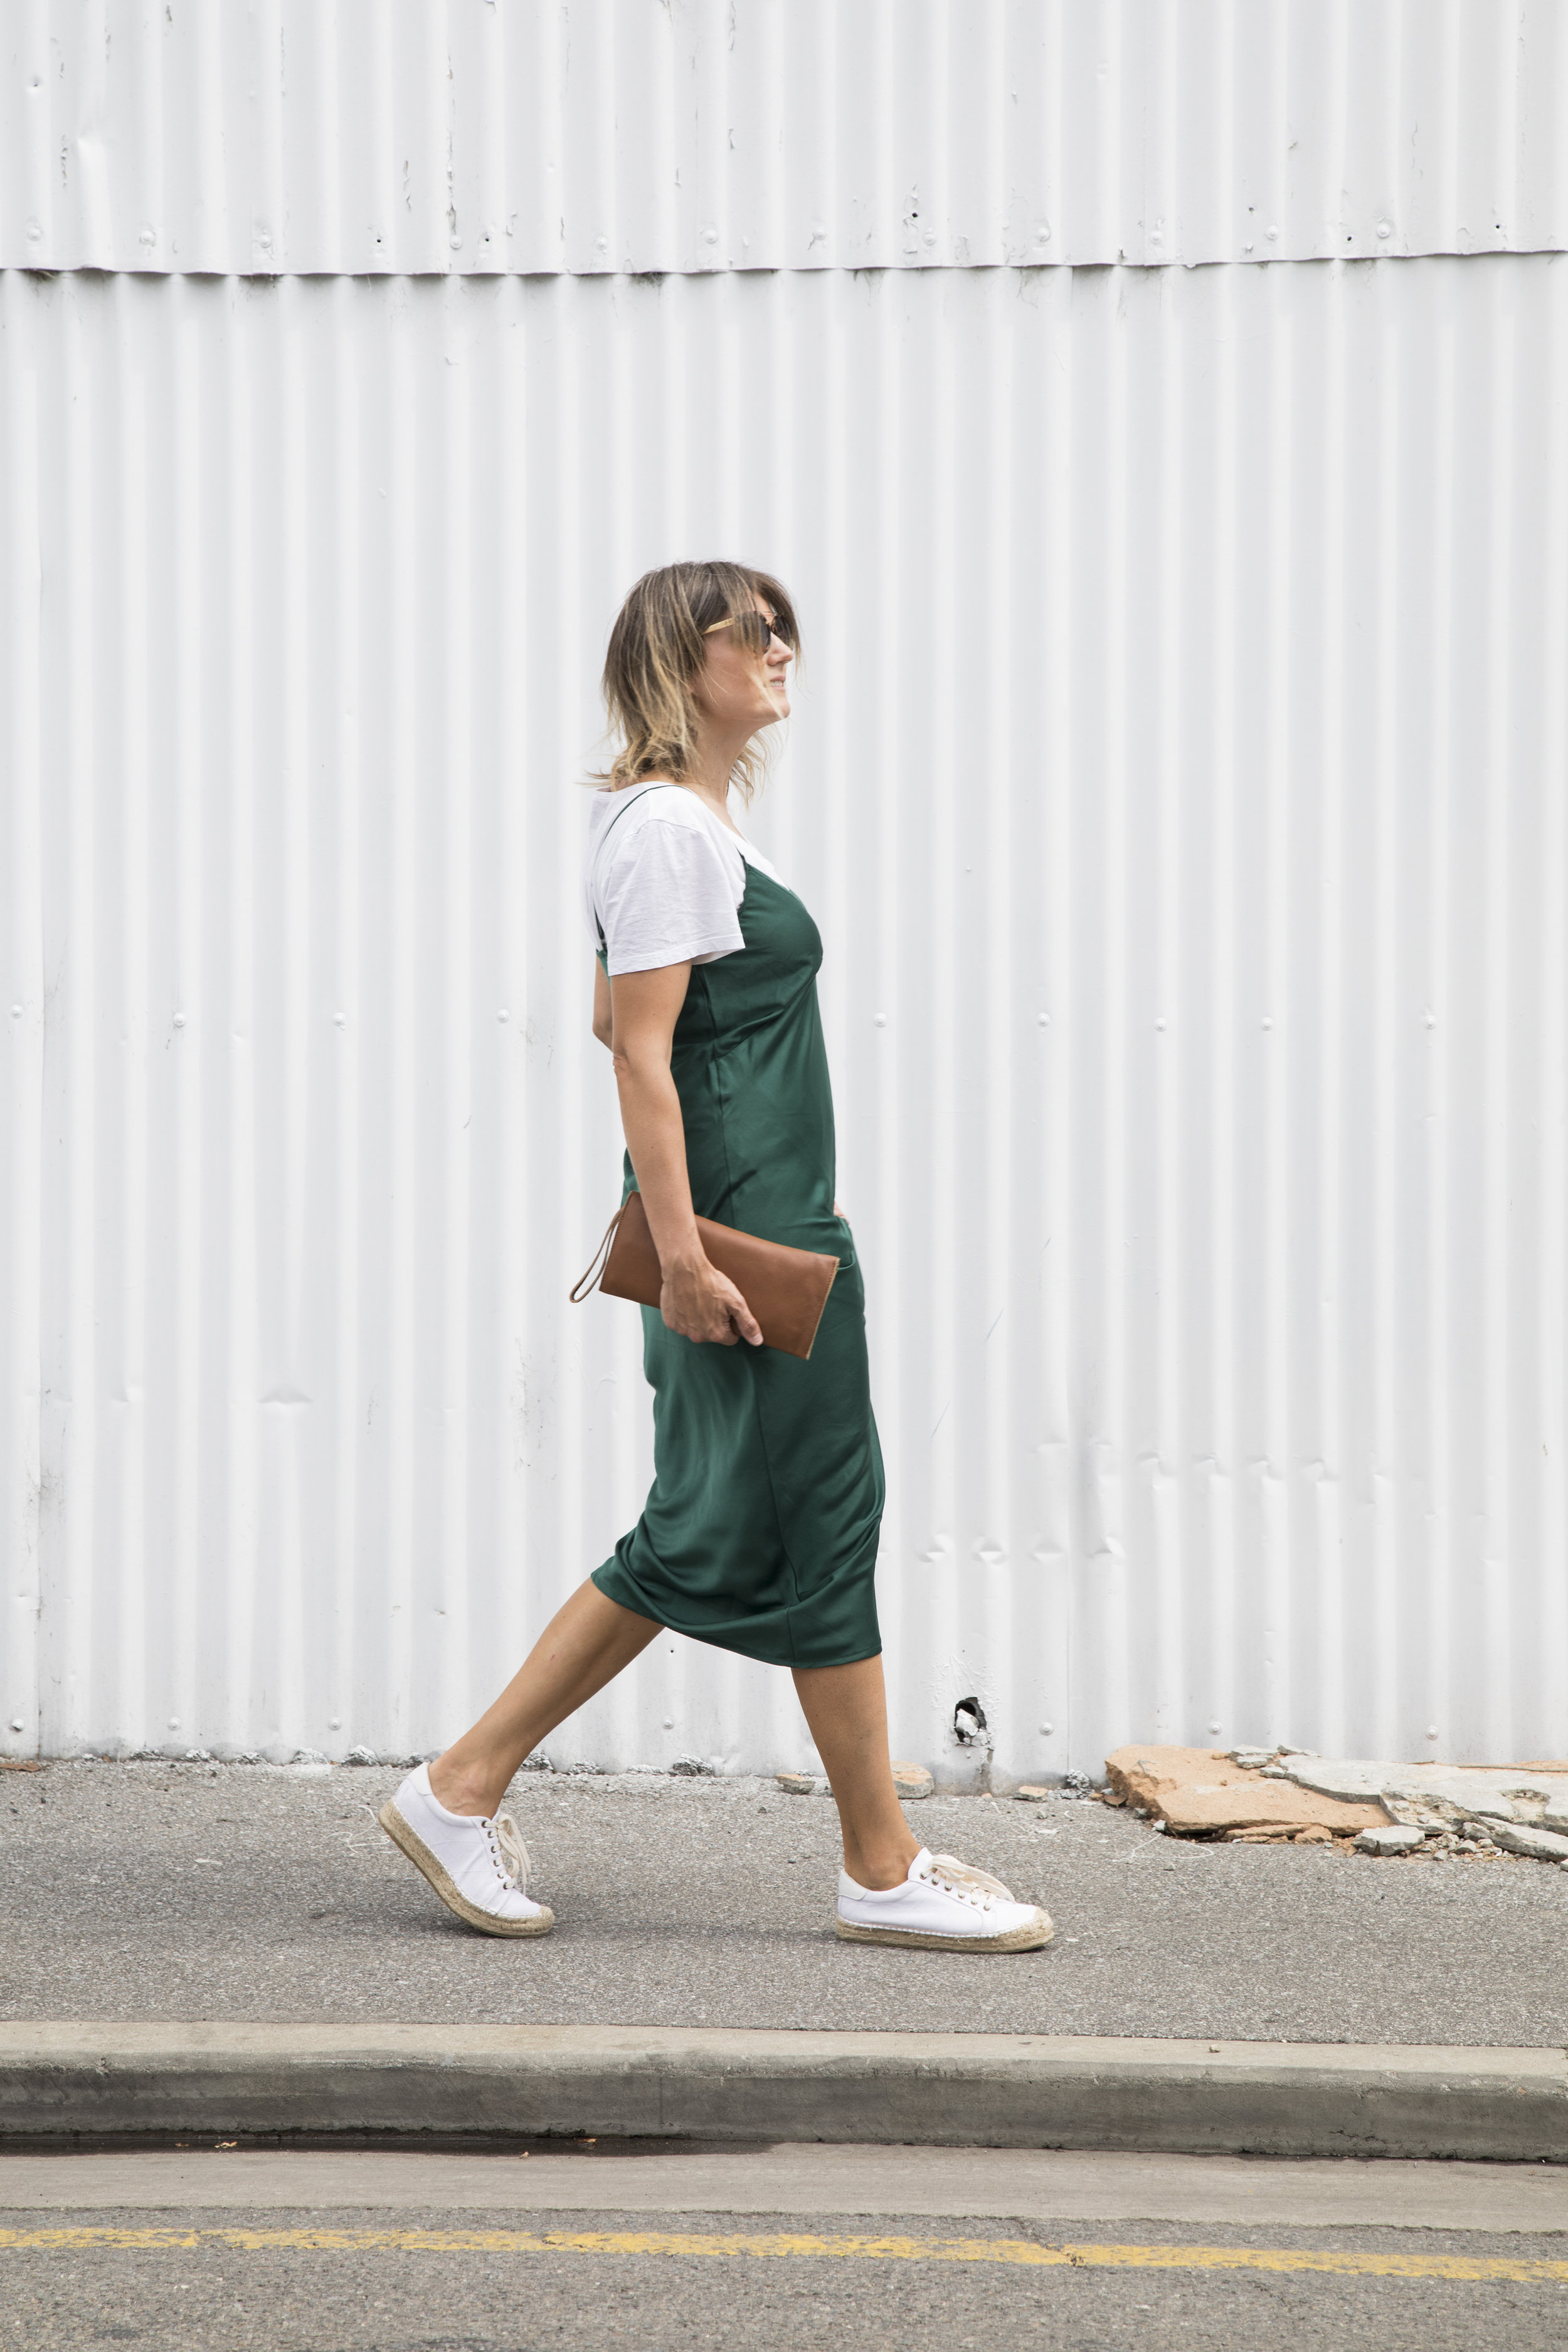 Sneakers_and_Soul_Green_Dress_05.jpg